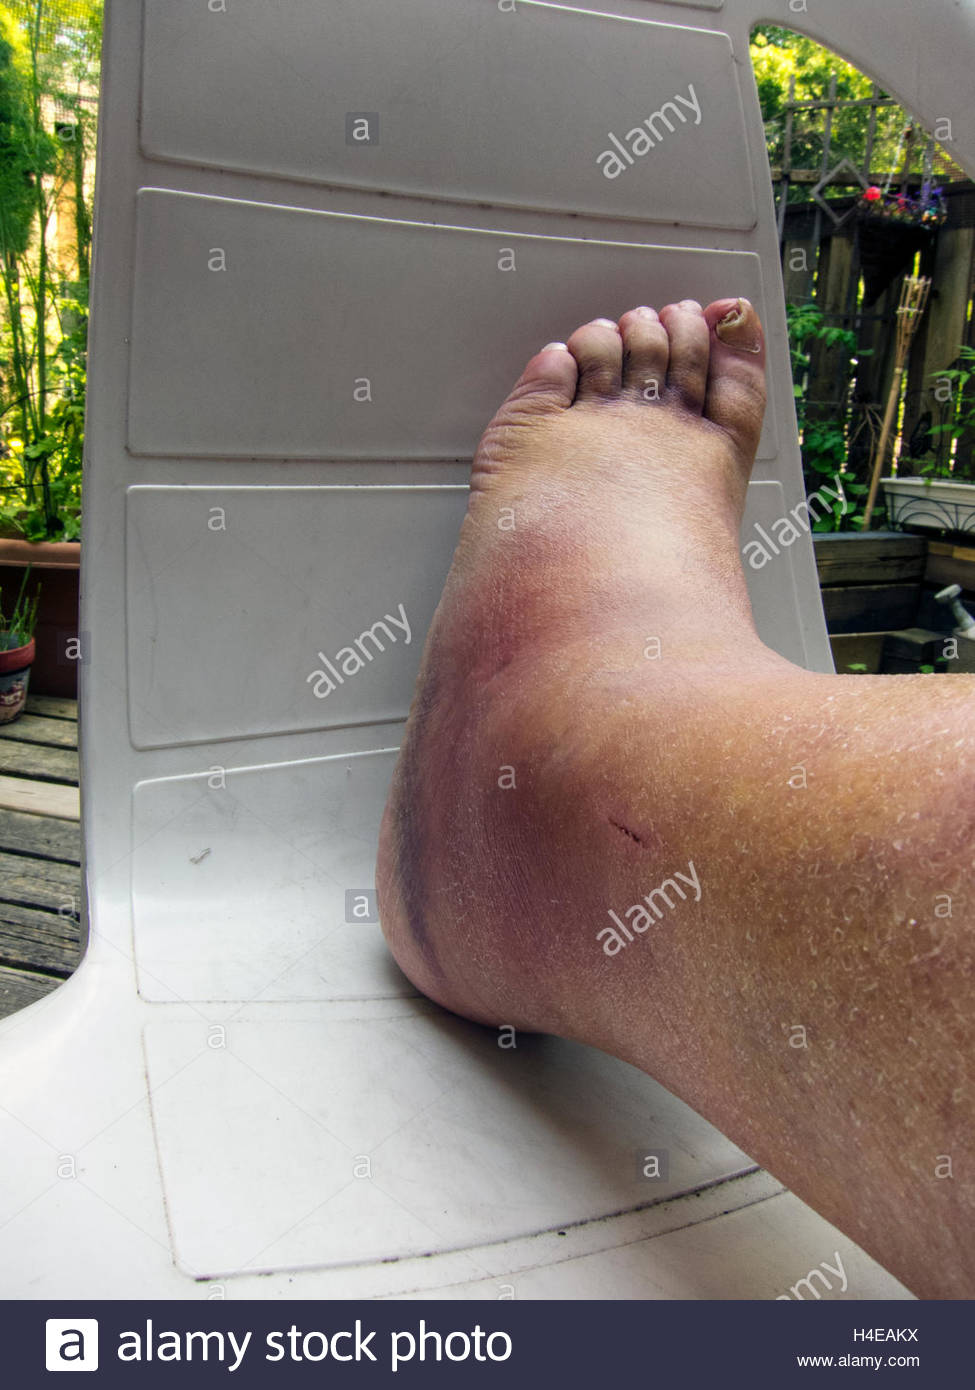 Broken Ankle  Bruises And Swelling On Leg  Foot And Toes